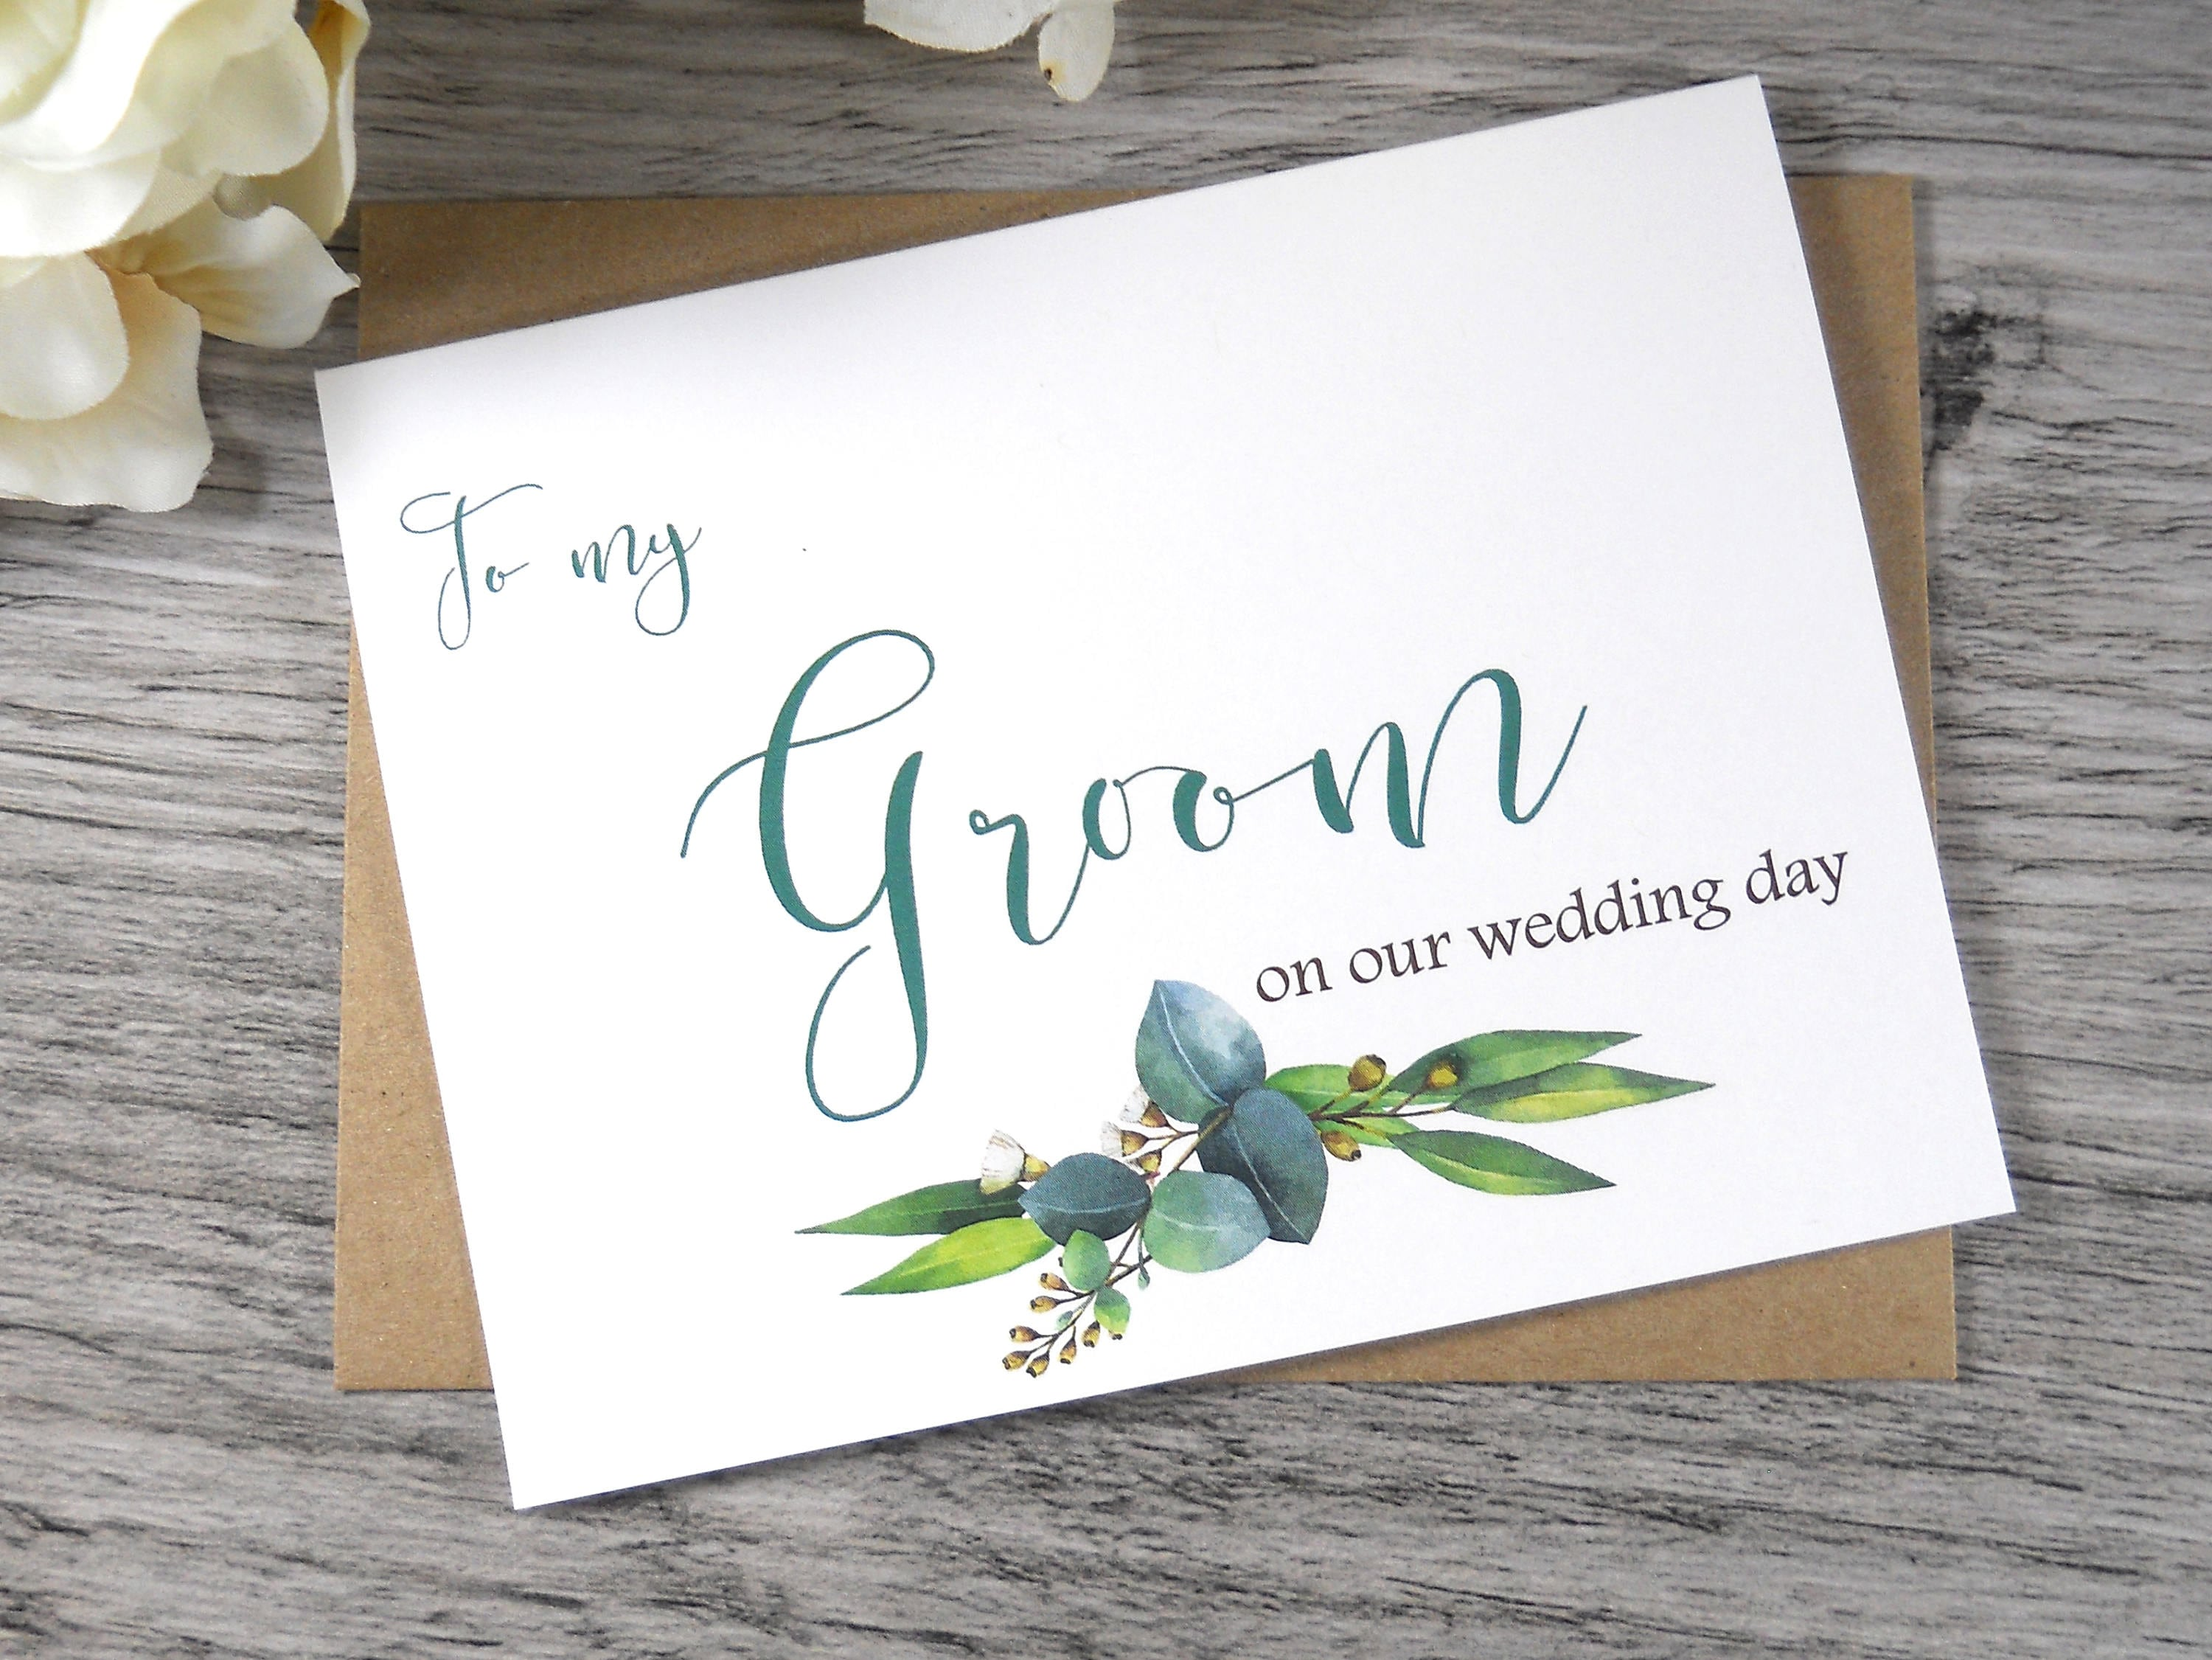 To My Groom On Our Wedding Day Card To My Groom Card Groom Etsy